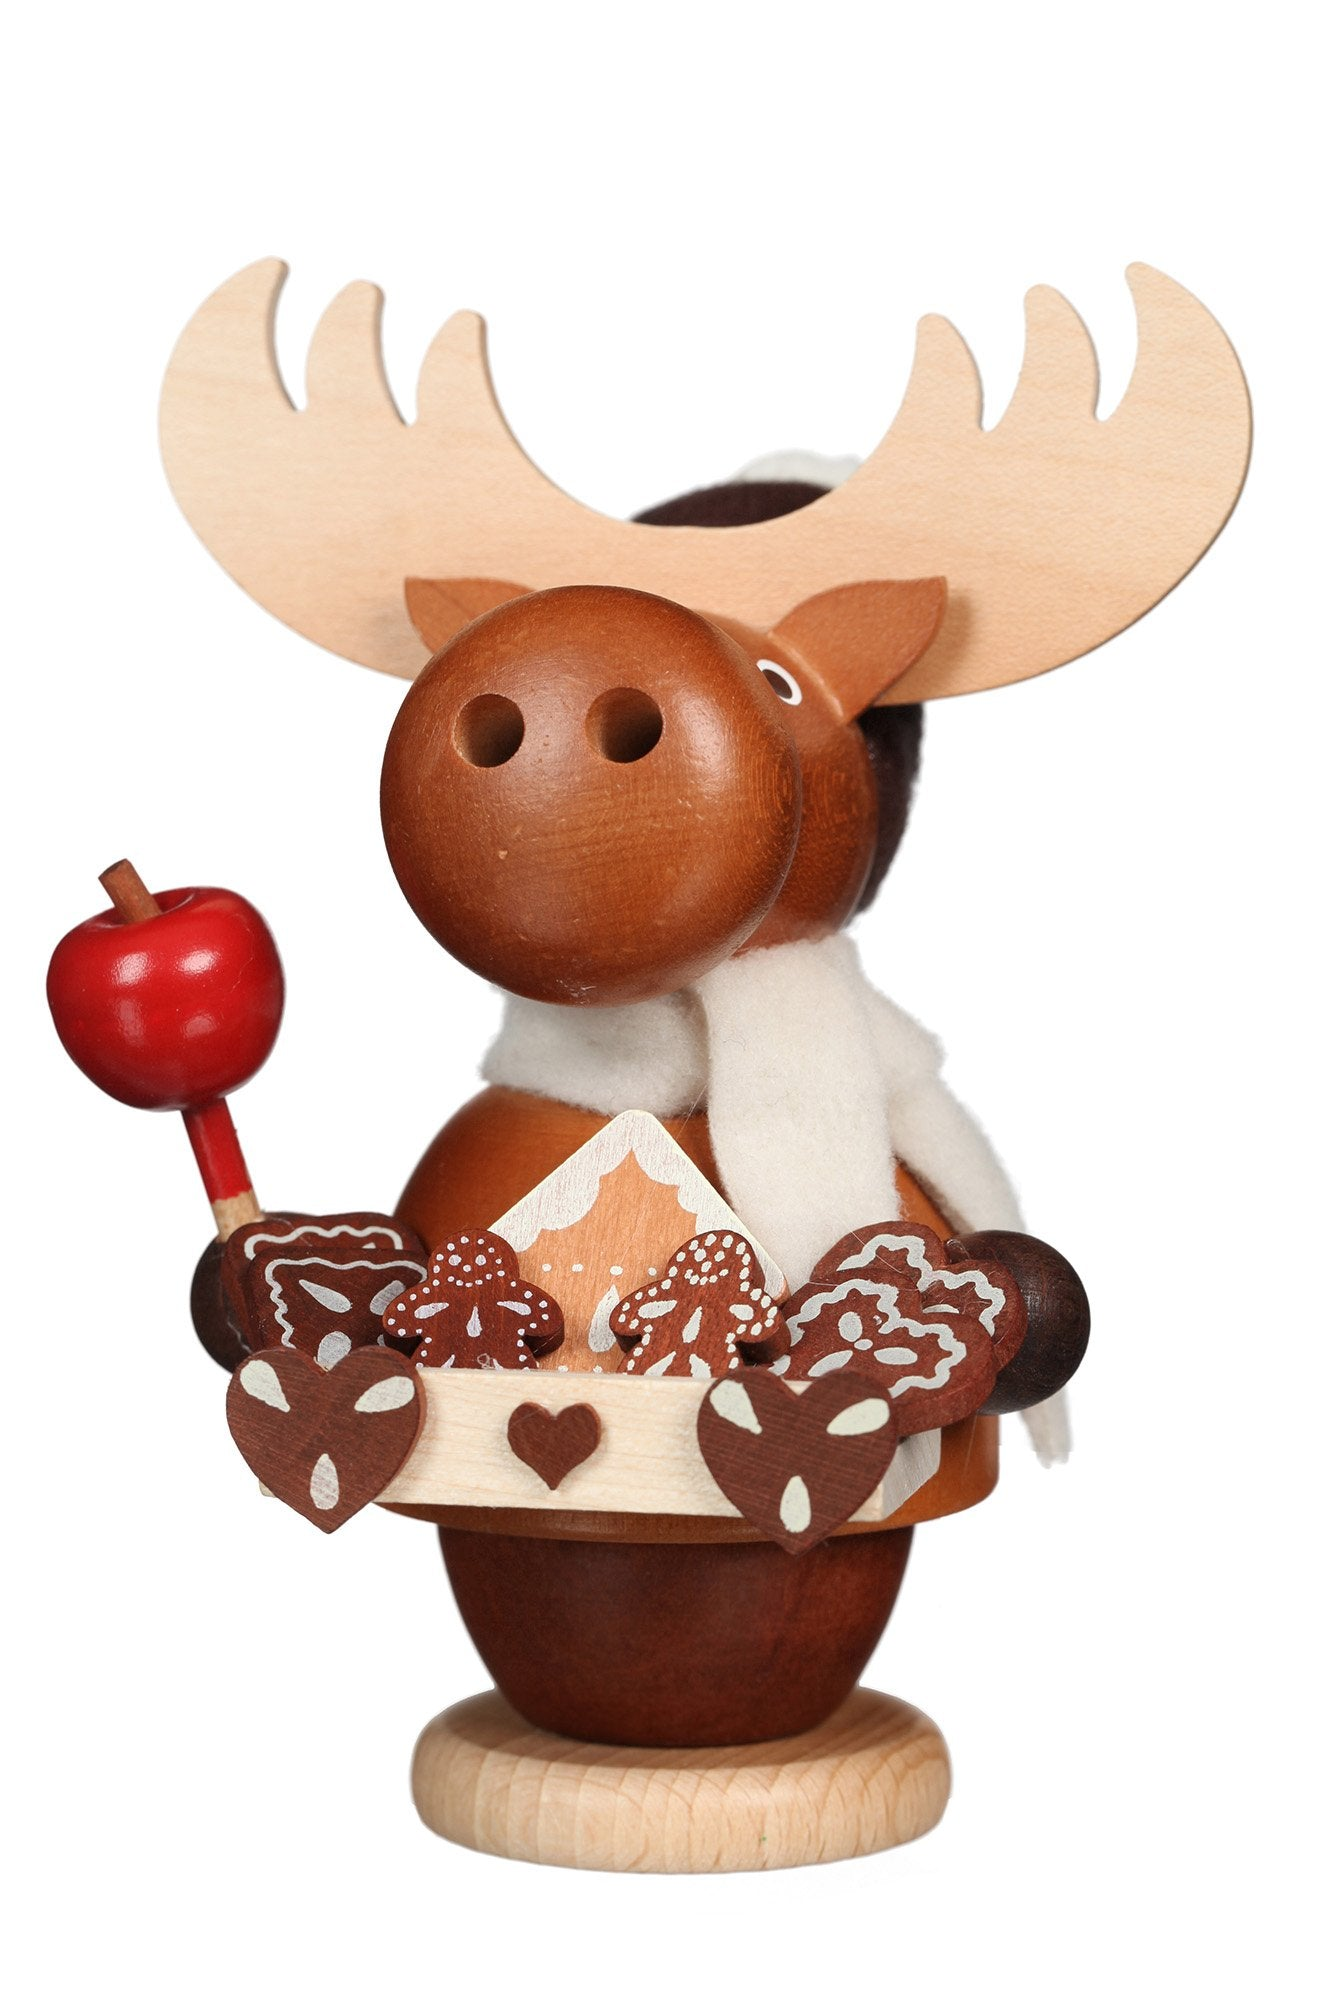 Incense Burner - Mini - Treats the Reindeer